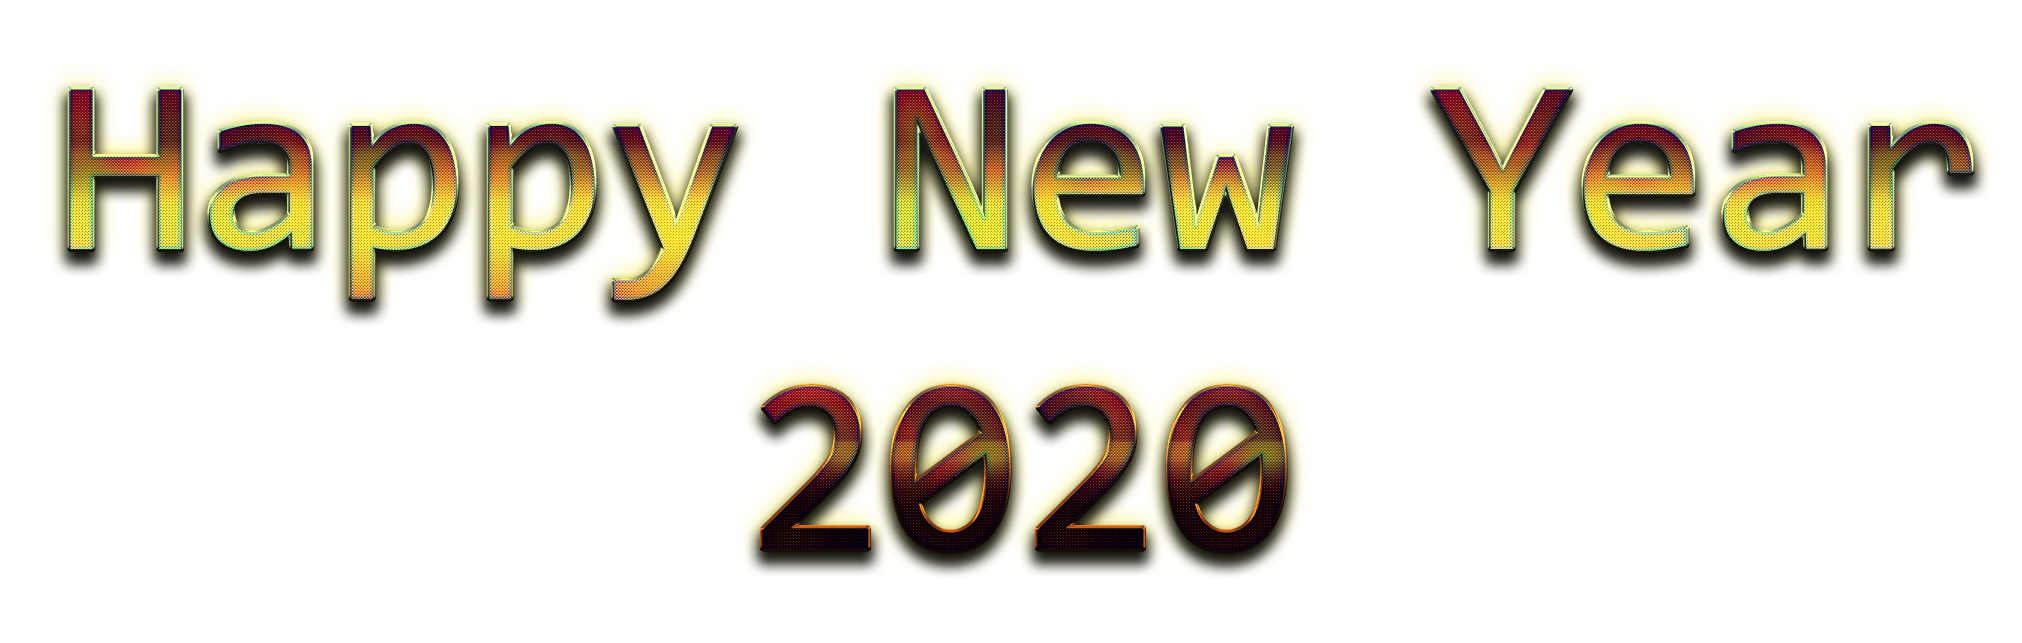 2020 New Year Png Images Happy New Year And 2020 Calendar